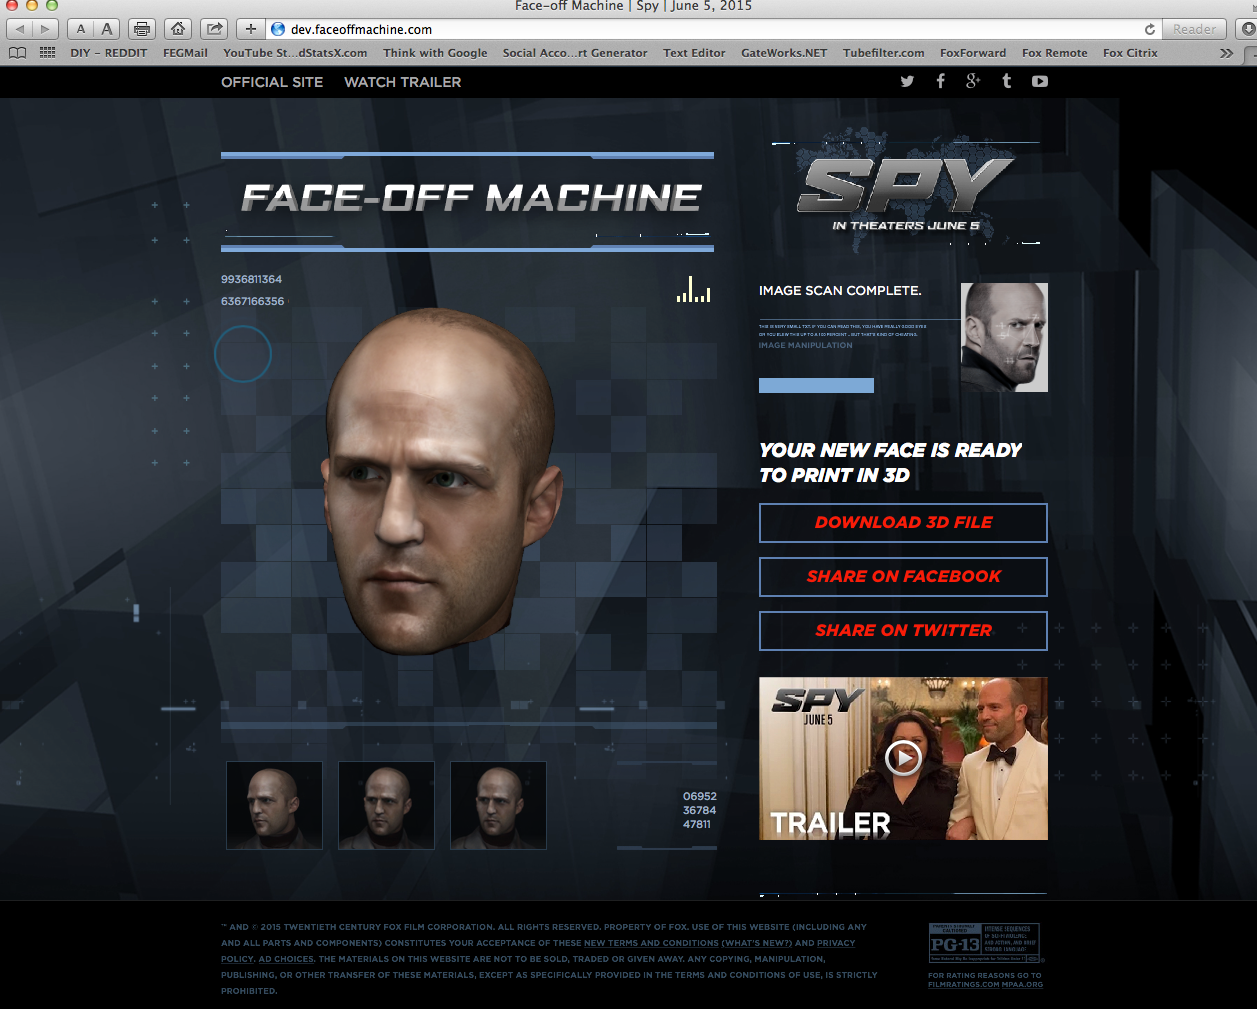 Enter Our Giveaway and Win Jason Statham's Face for Spy